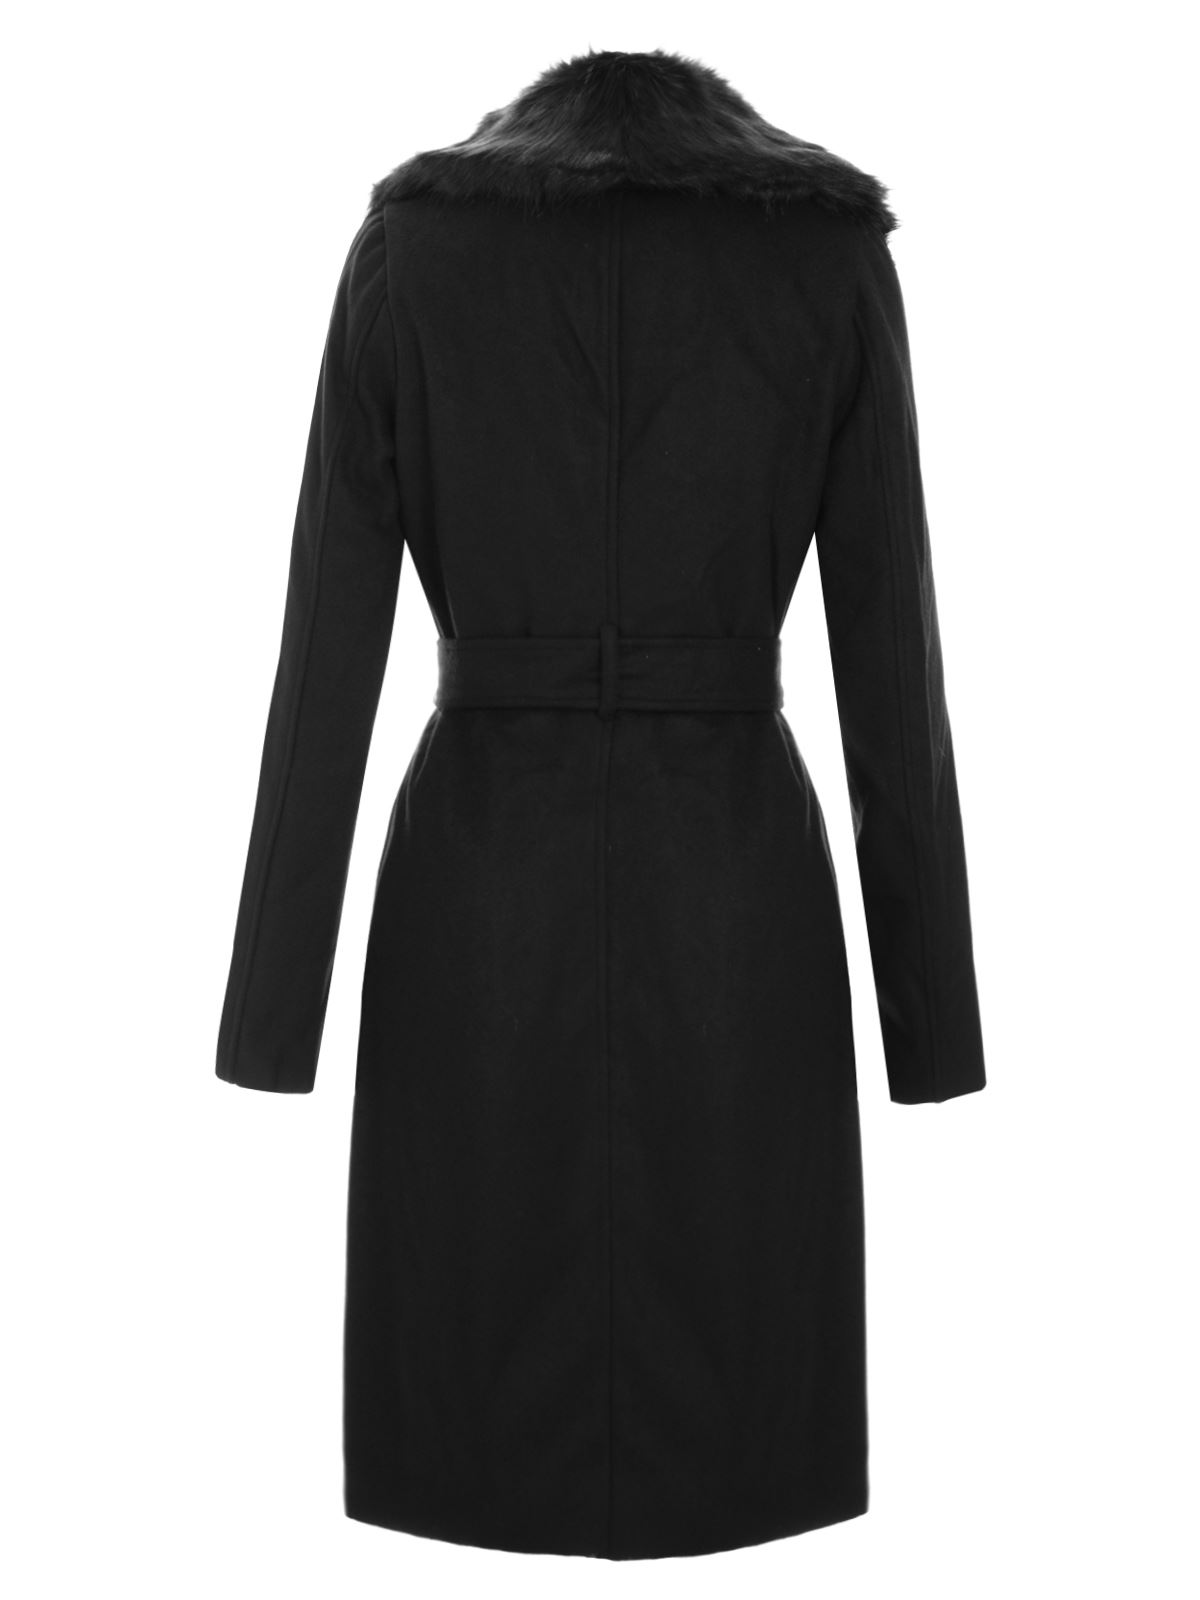 Try our Women's Wool Peacoat at Lands' End. Everything we sell is Guaranteed. Period.® Since